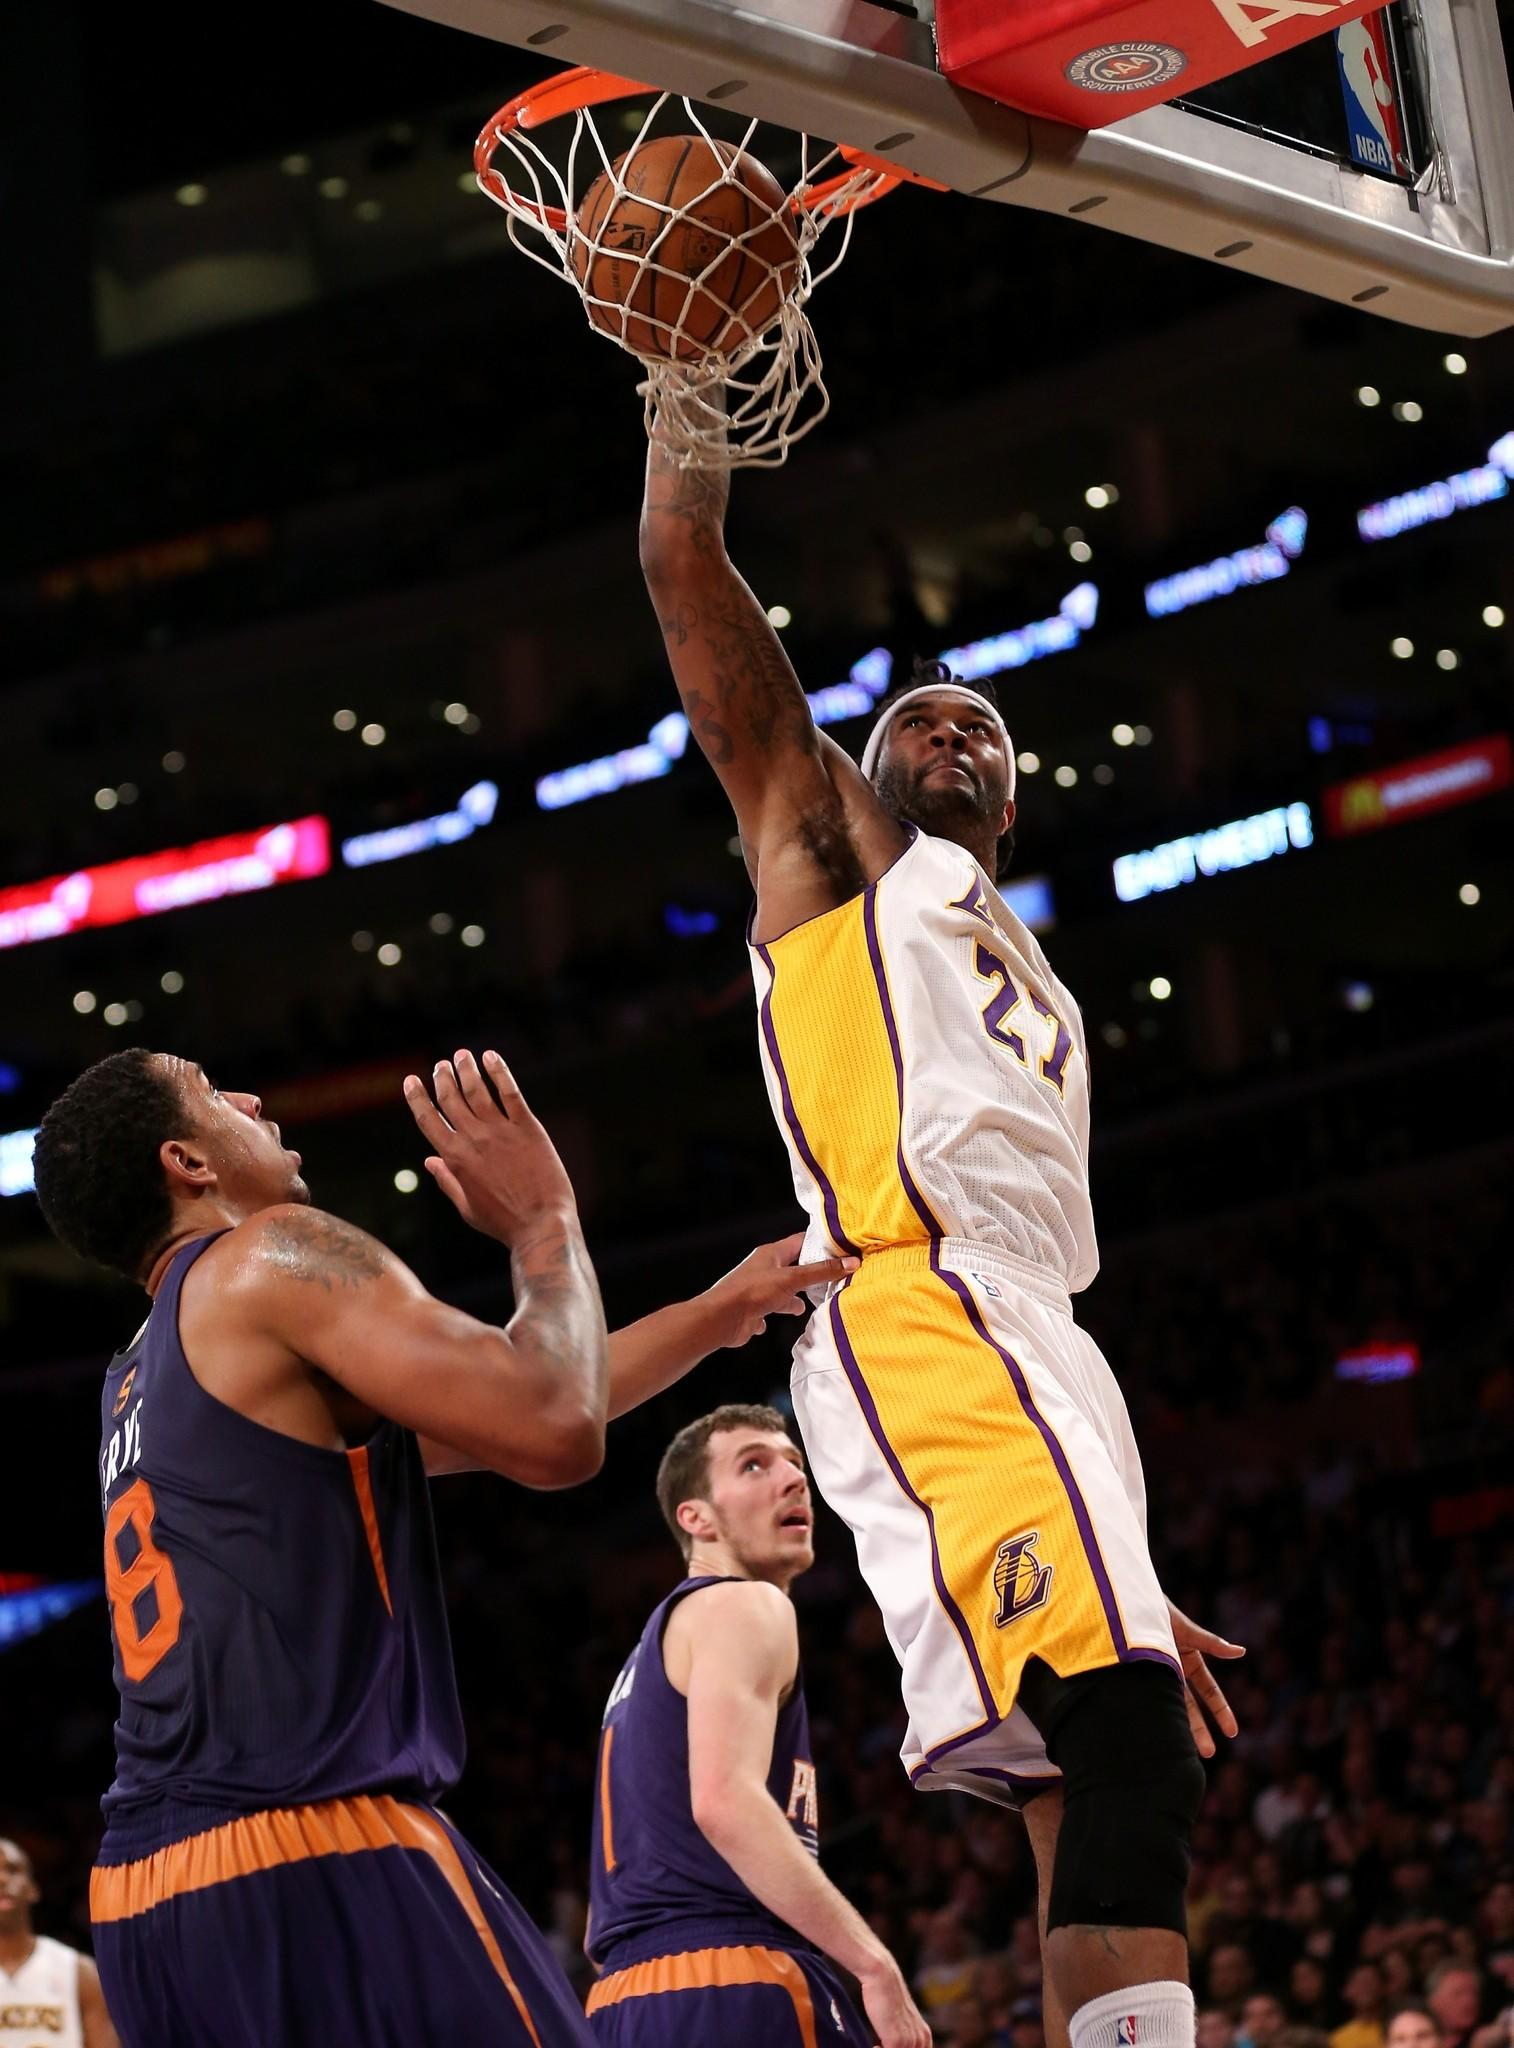 Lakers power forward Jordan Hill dunks over Phoenix Suns forward Channing Frye during the first half of their game at Staples Center.